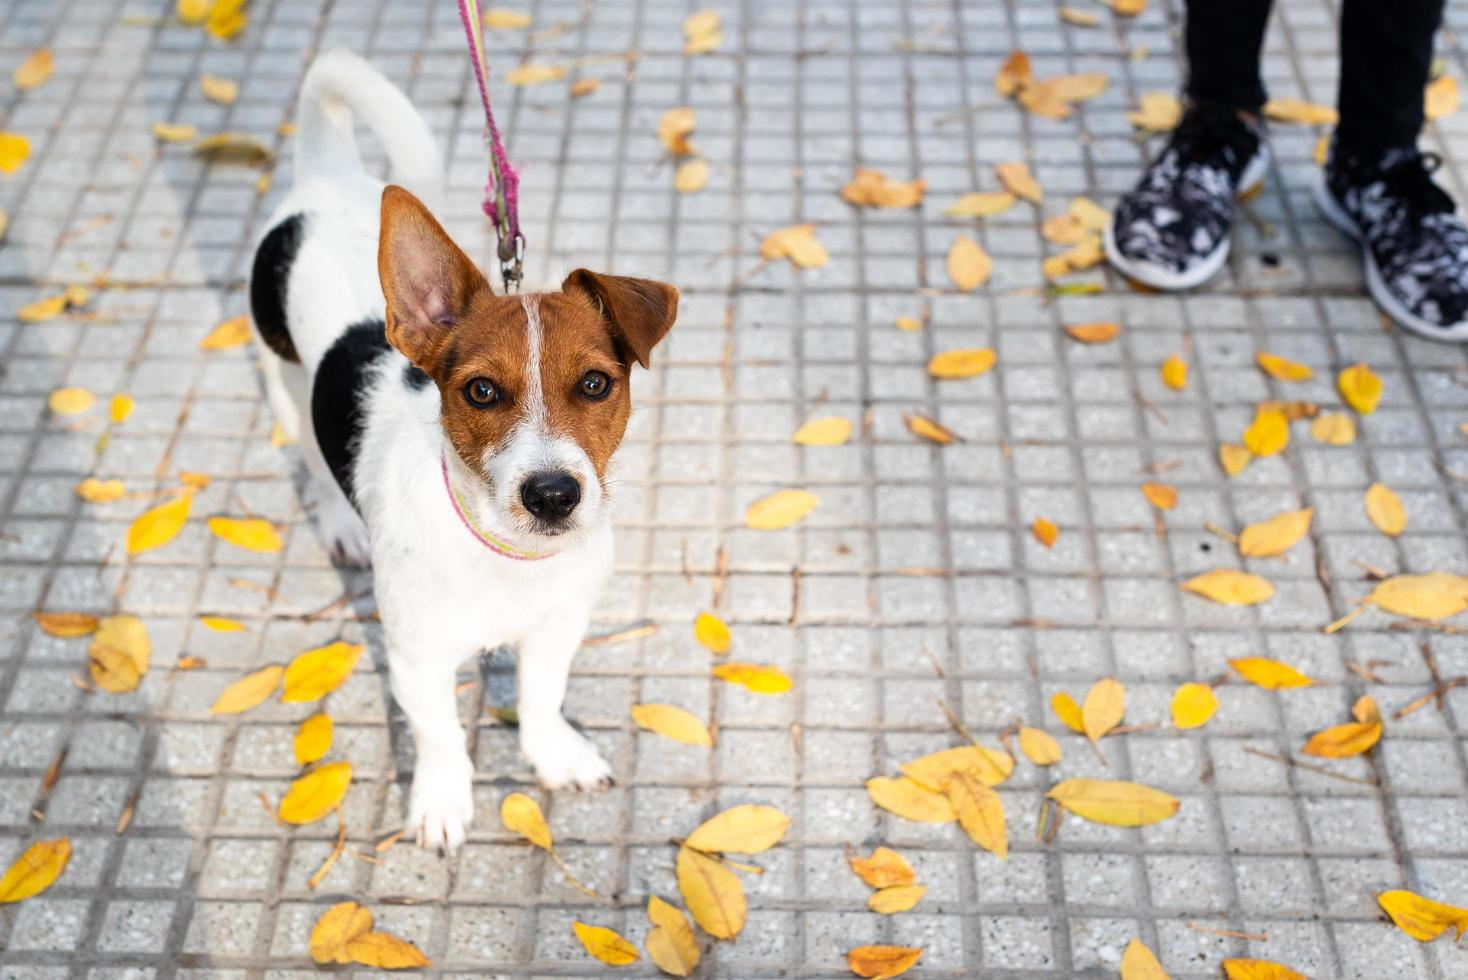 Jack Russell Terrier on a leash photo